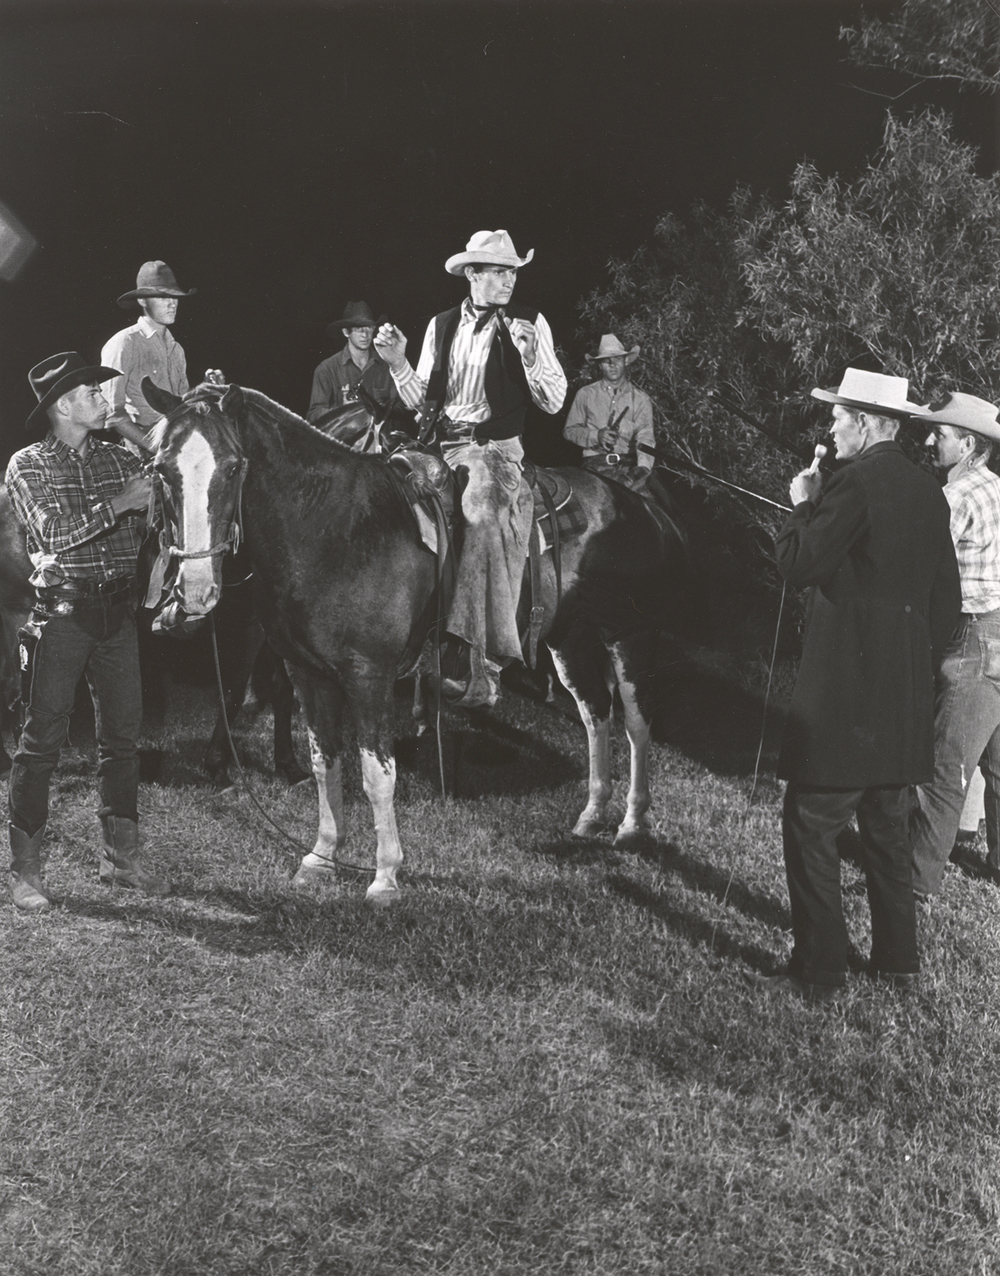 George Harvick, Terry Moberly, Bill Farmer, Harold Law, Richard Middlebrook (singing), Clifford Teinert (horseback).jpg